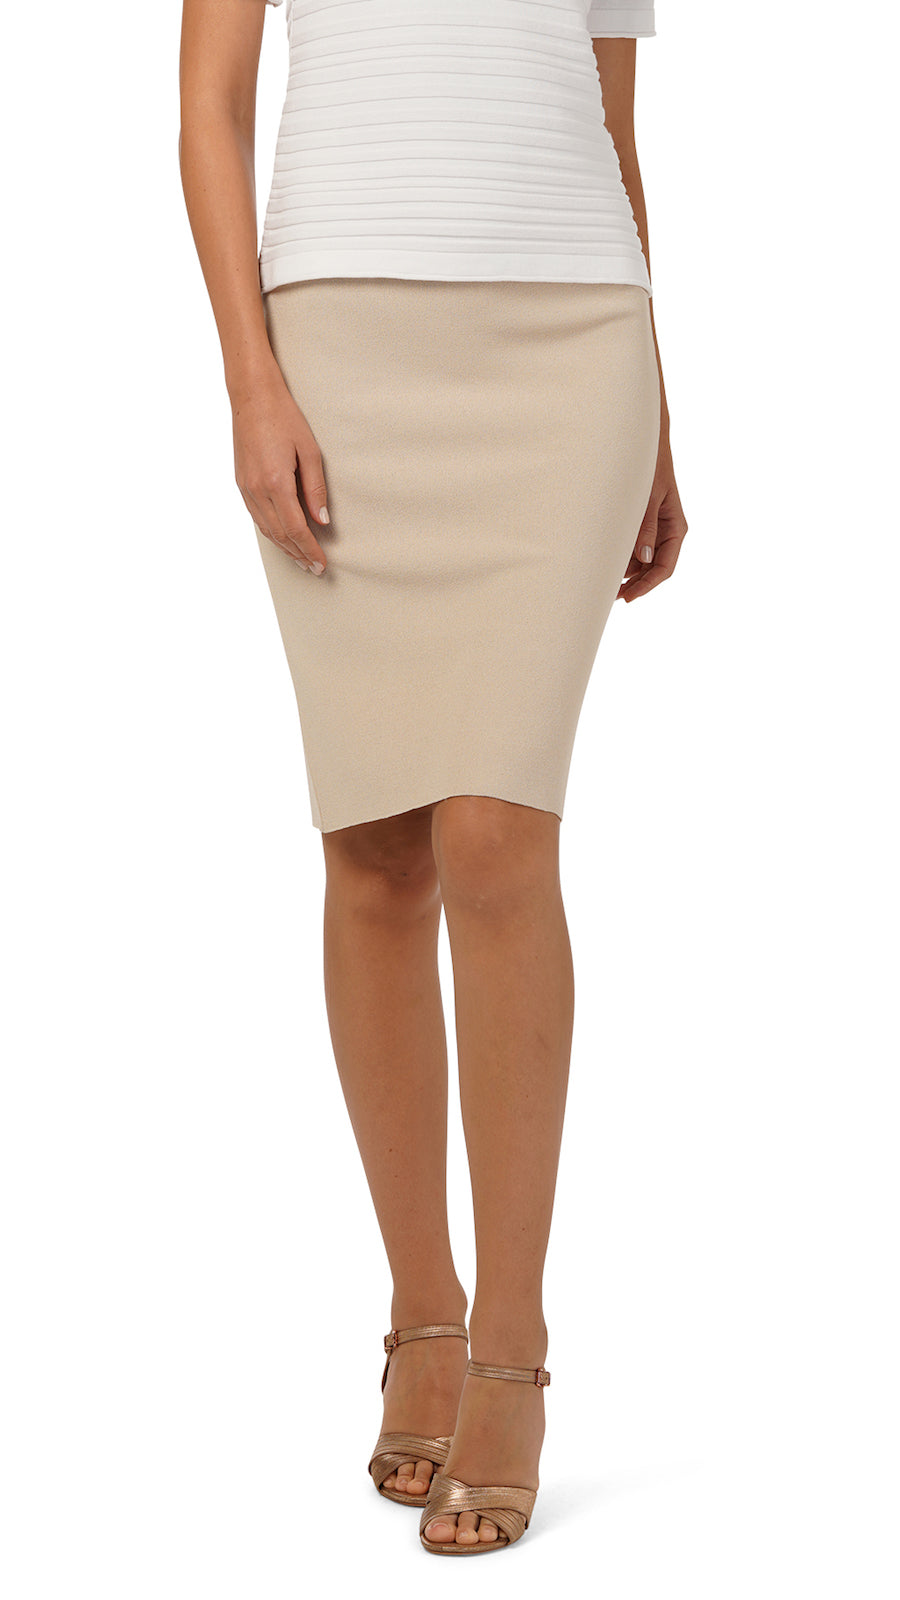 Cora Milano Knit Pencil Skirt with Two Back Slits; Beige